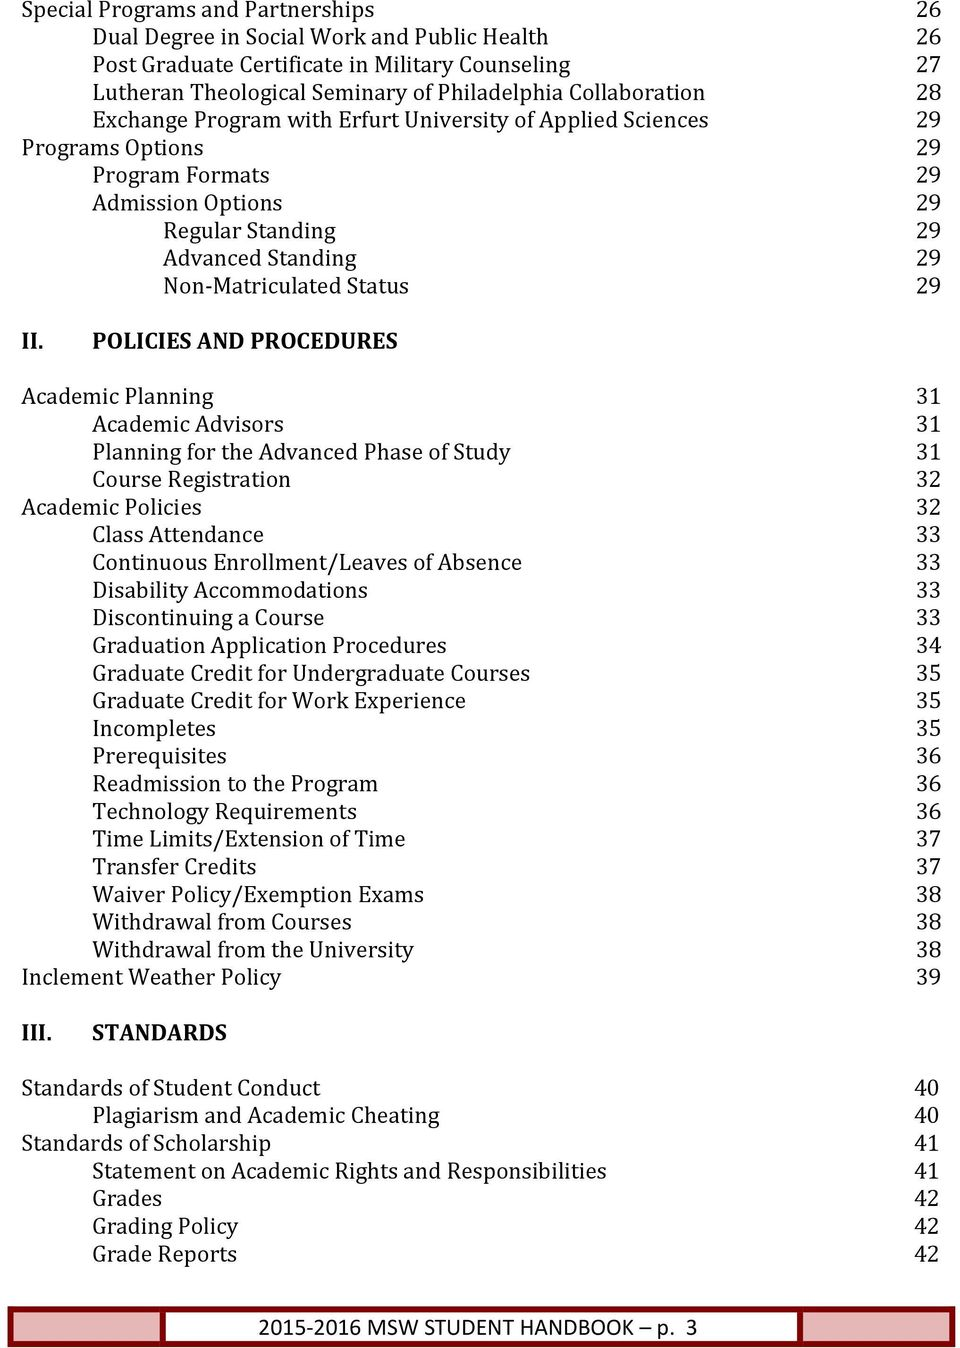 POLICIES AND PROCEDURES Academic Planning 31 Academic Advisors 31 Planning for the Advanced Phase of Study 31 Course Registration 32 Academic Policies 32 Class Attendance 33 Continuous